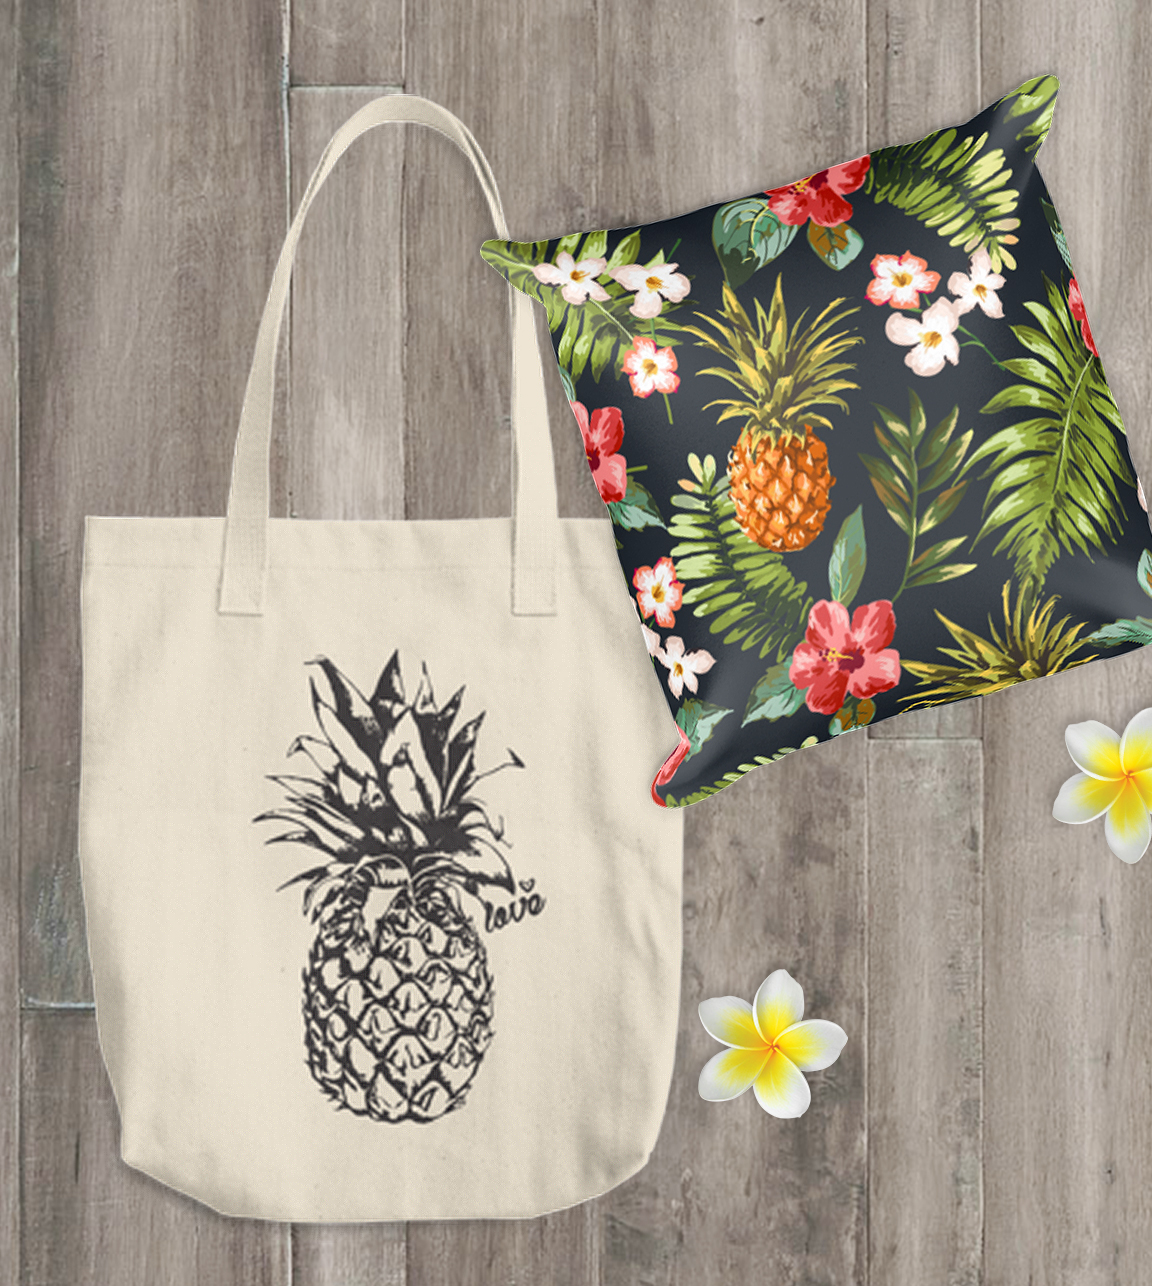 Shop Aloha Lovely Pillow and Tote